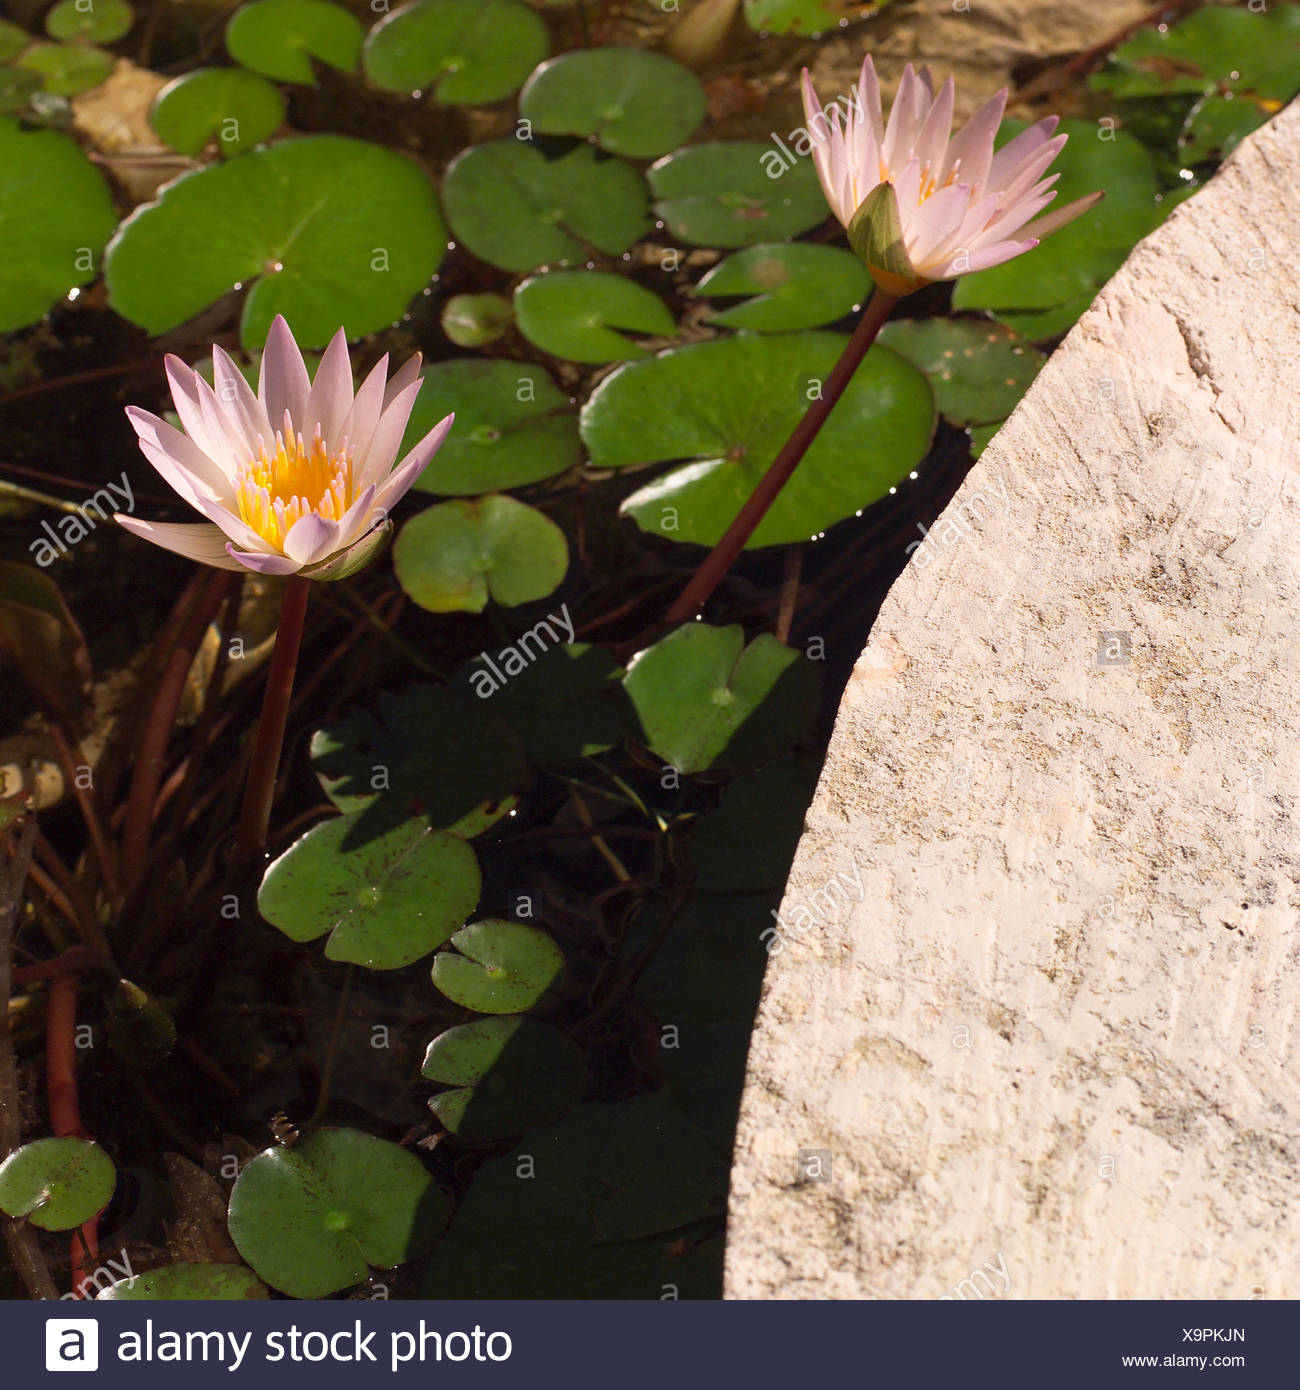 Leaf flower plant leaves flowers lily fresh water pond water leaf flower plant leaves flowers lily fresh water pond water tropical lilies izmirmasajfo